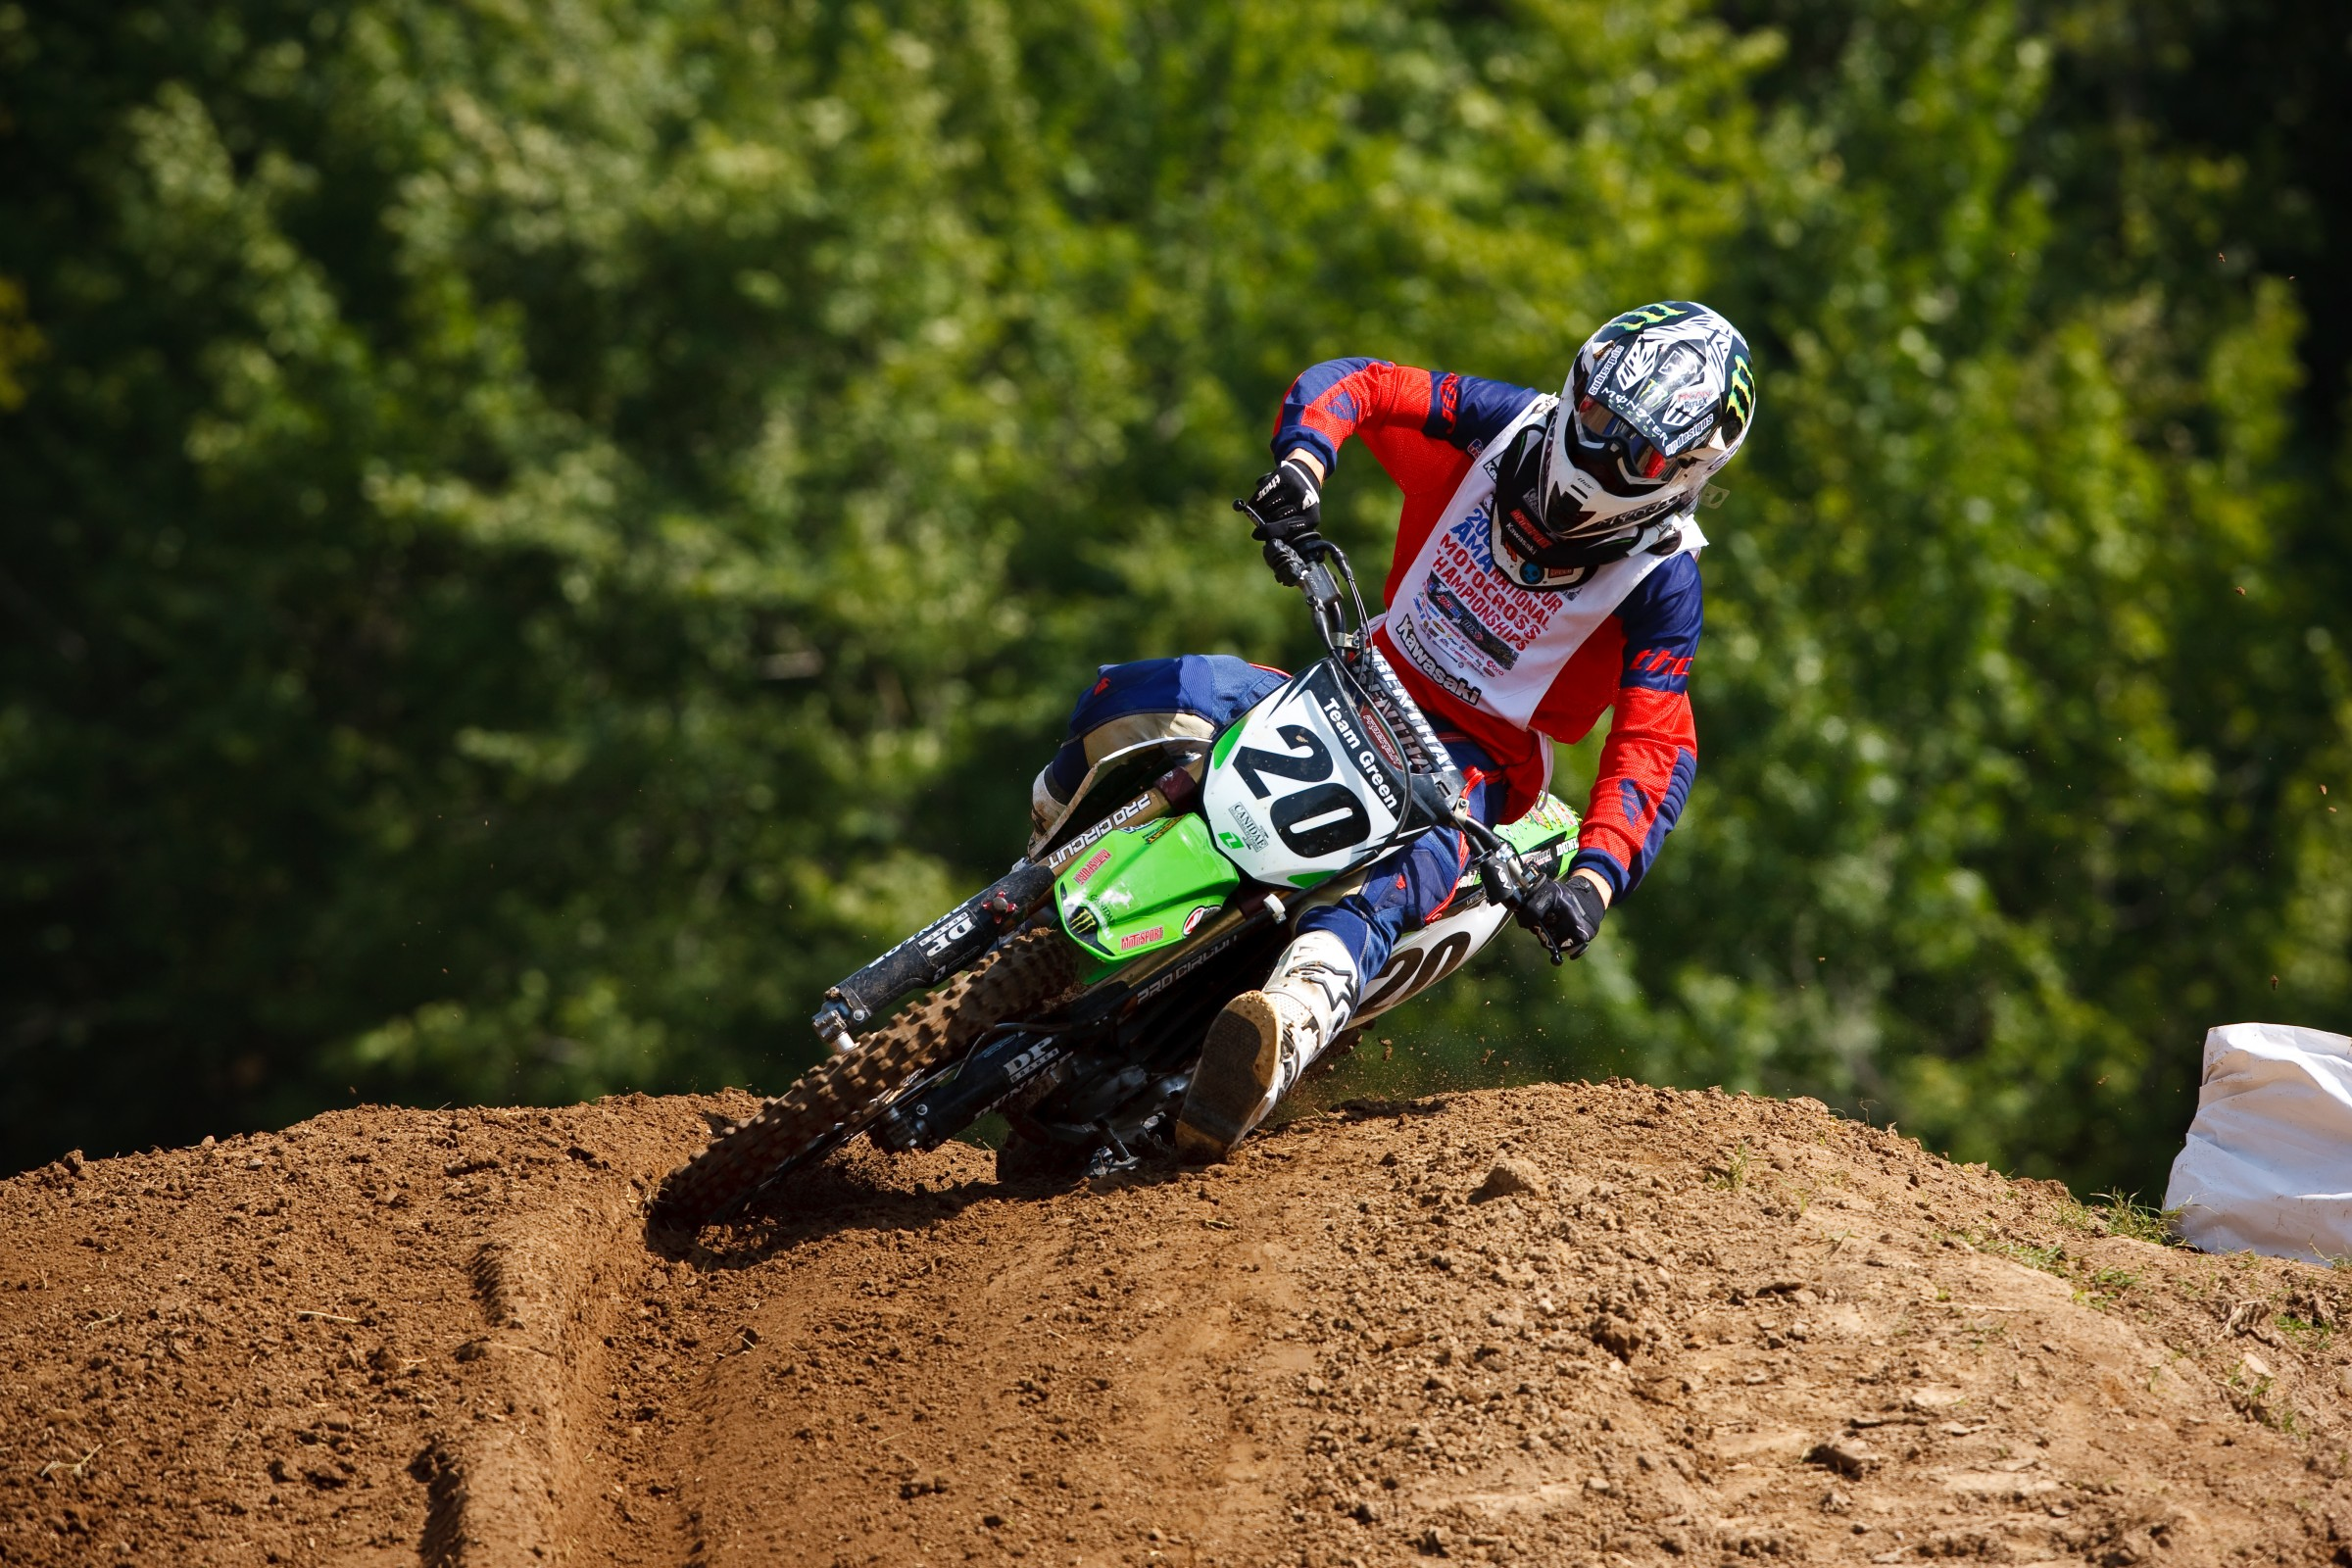 Wilson went 10-4 at Hangtown the next year to finish sixth overall. But he would get the 250 National Motocross Championship the next year, in 2011.